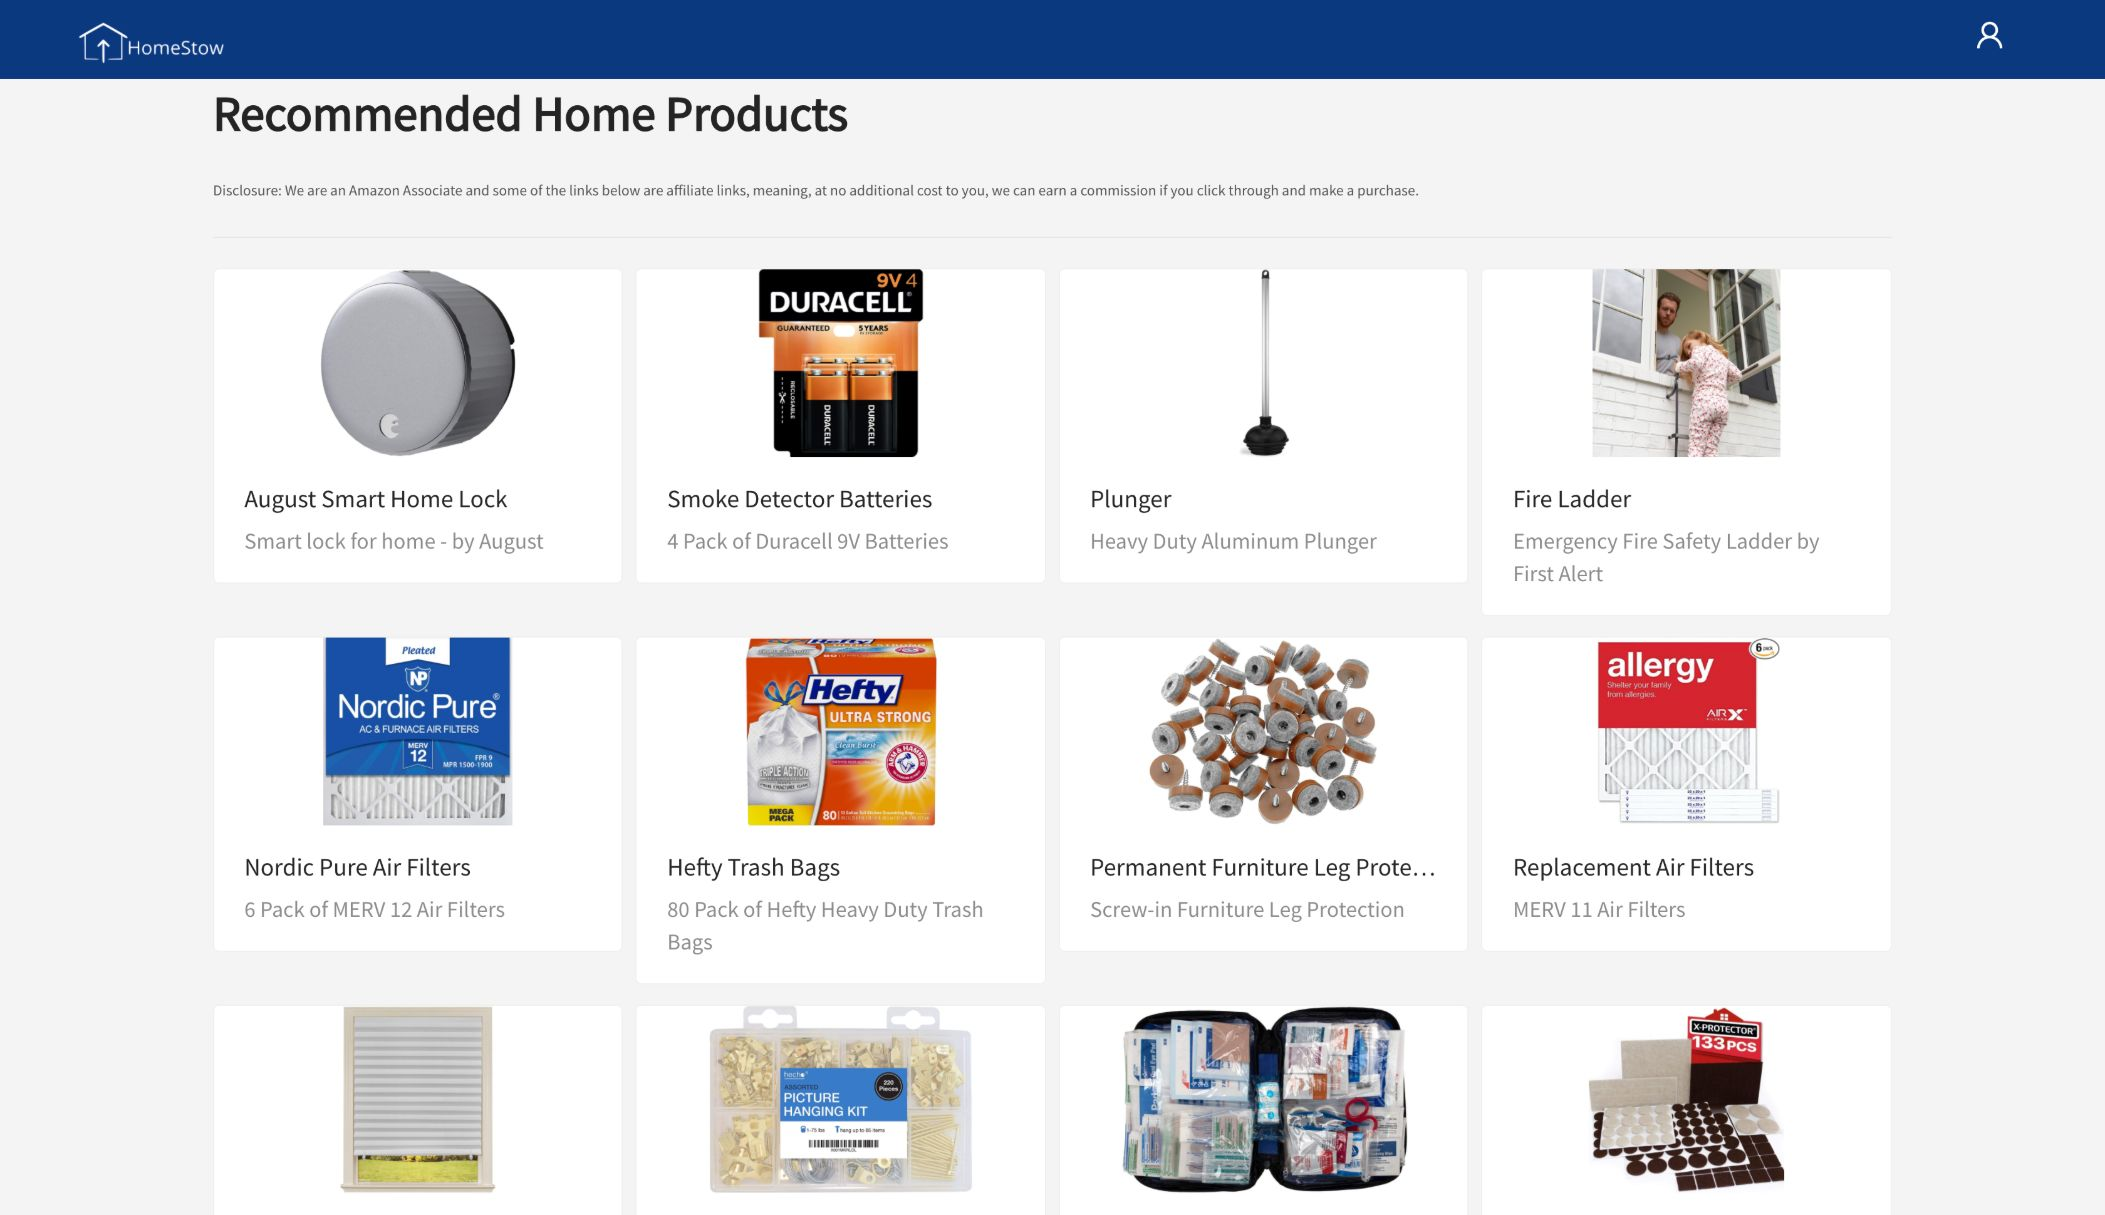 HomeStow recommended products